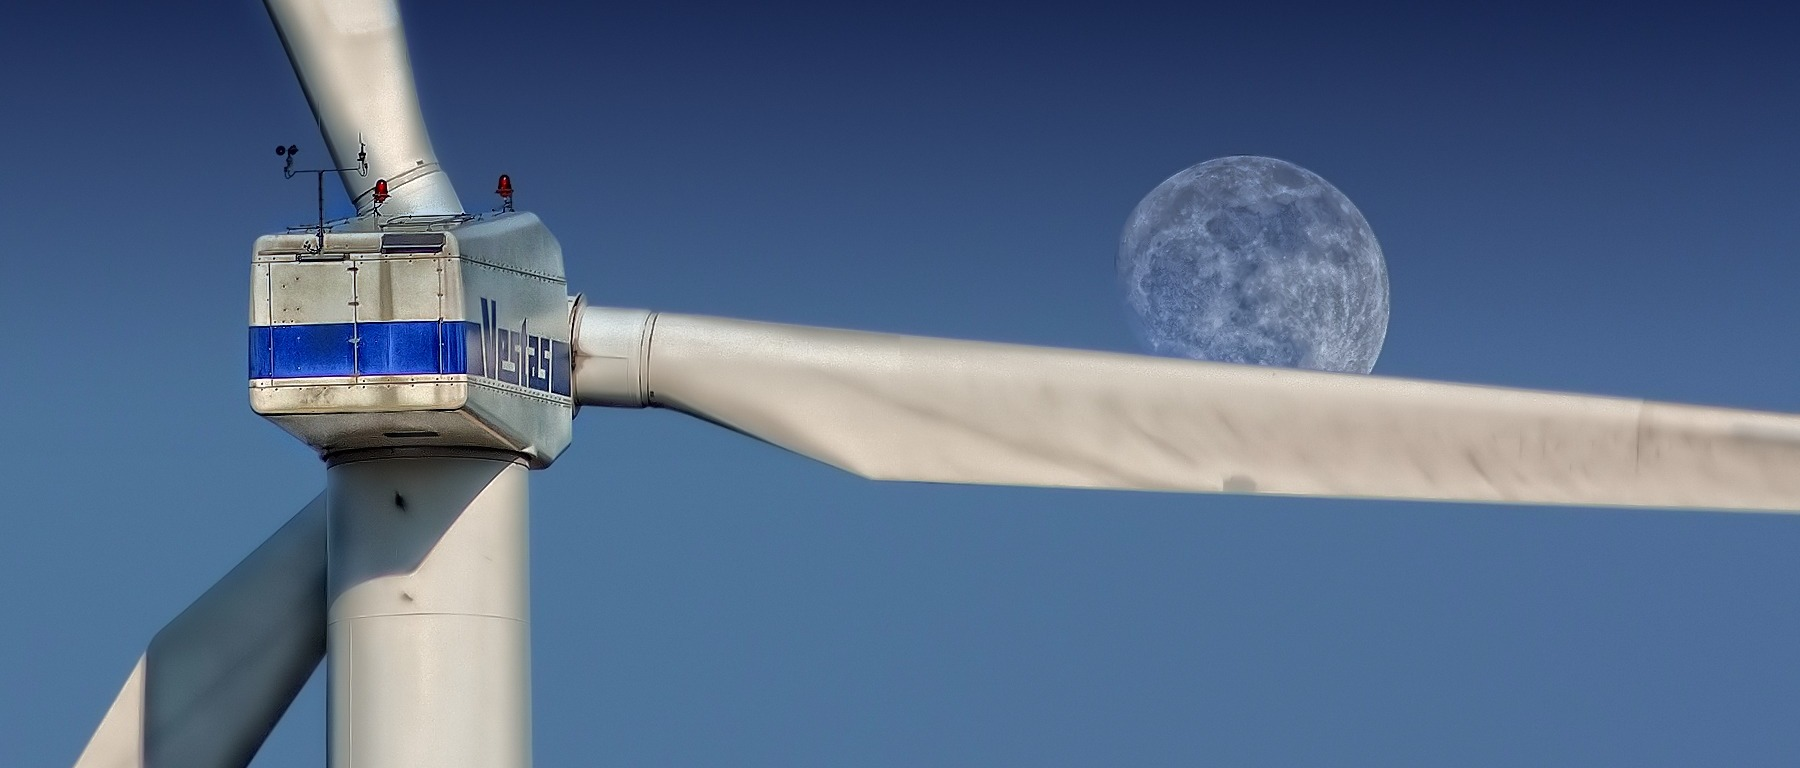 pinwheel,wind energy,wind power,enerie,environmental technology,wind park,sky,renewable energy,turbine, DON CHARISMA